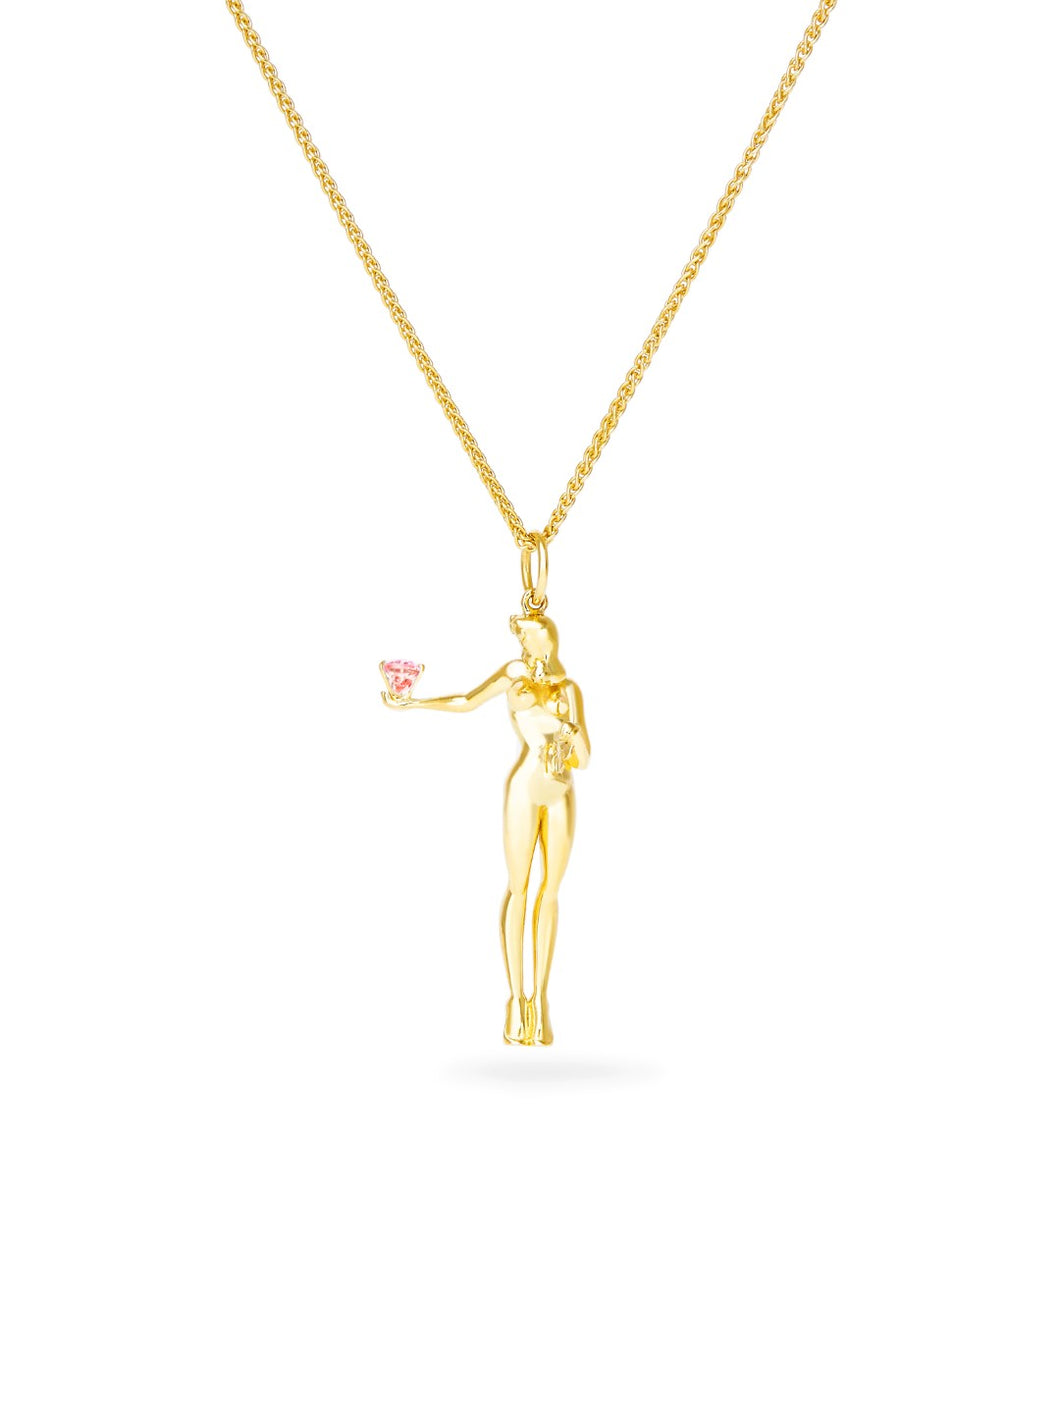 Jerry's Girl Pendant & Chain